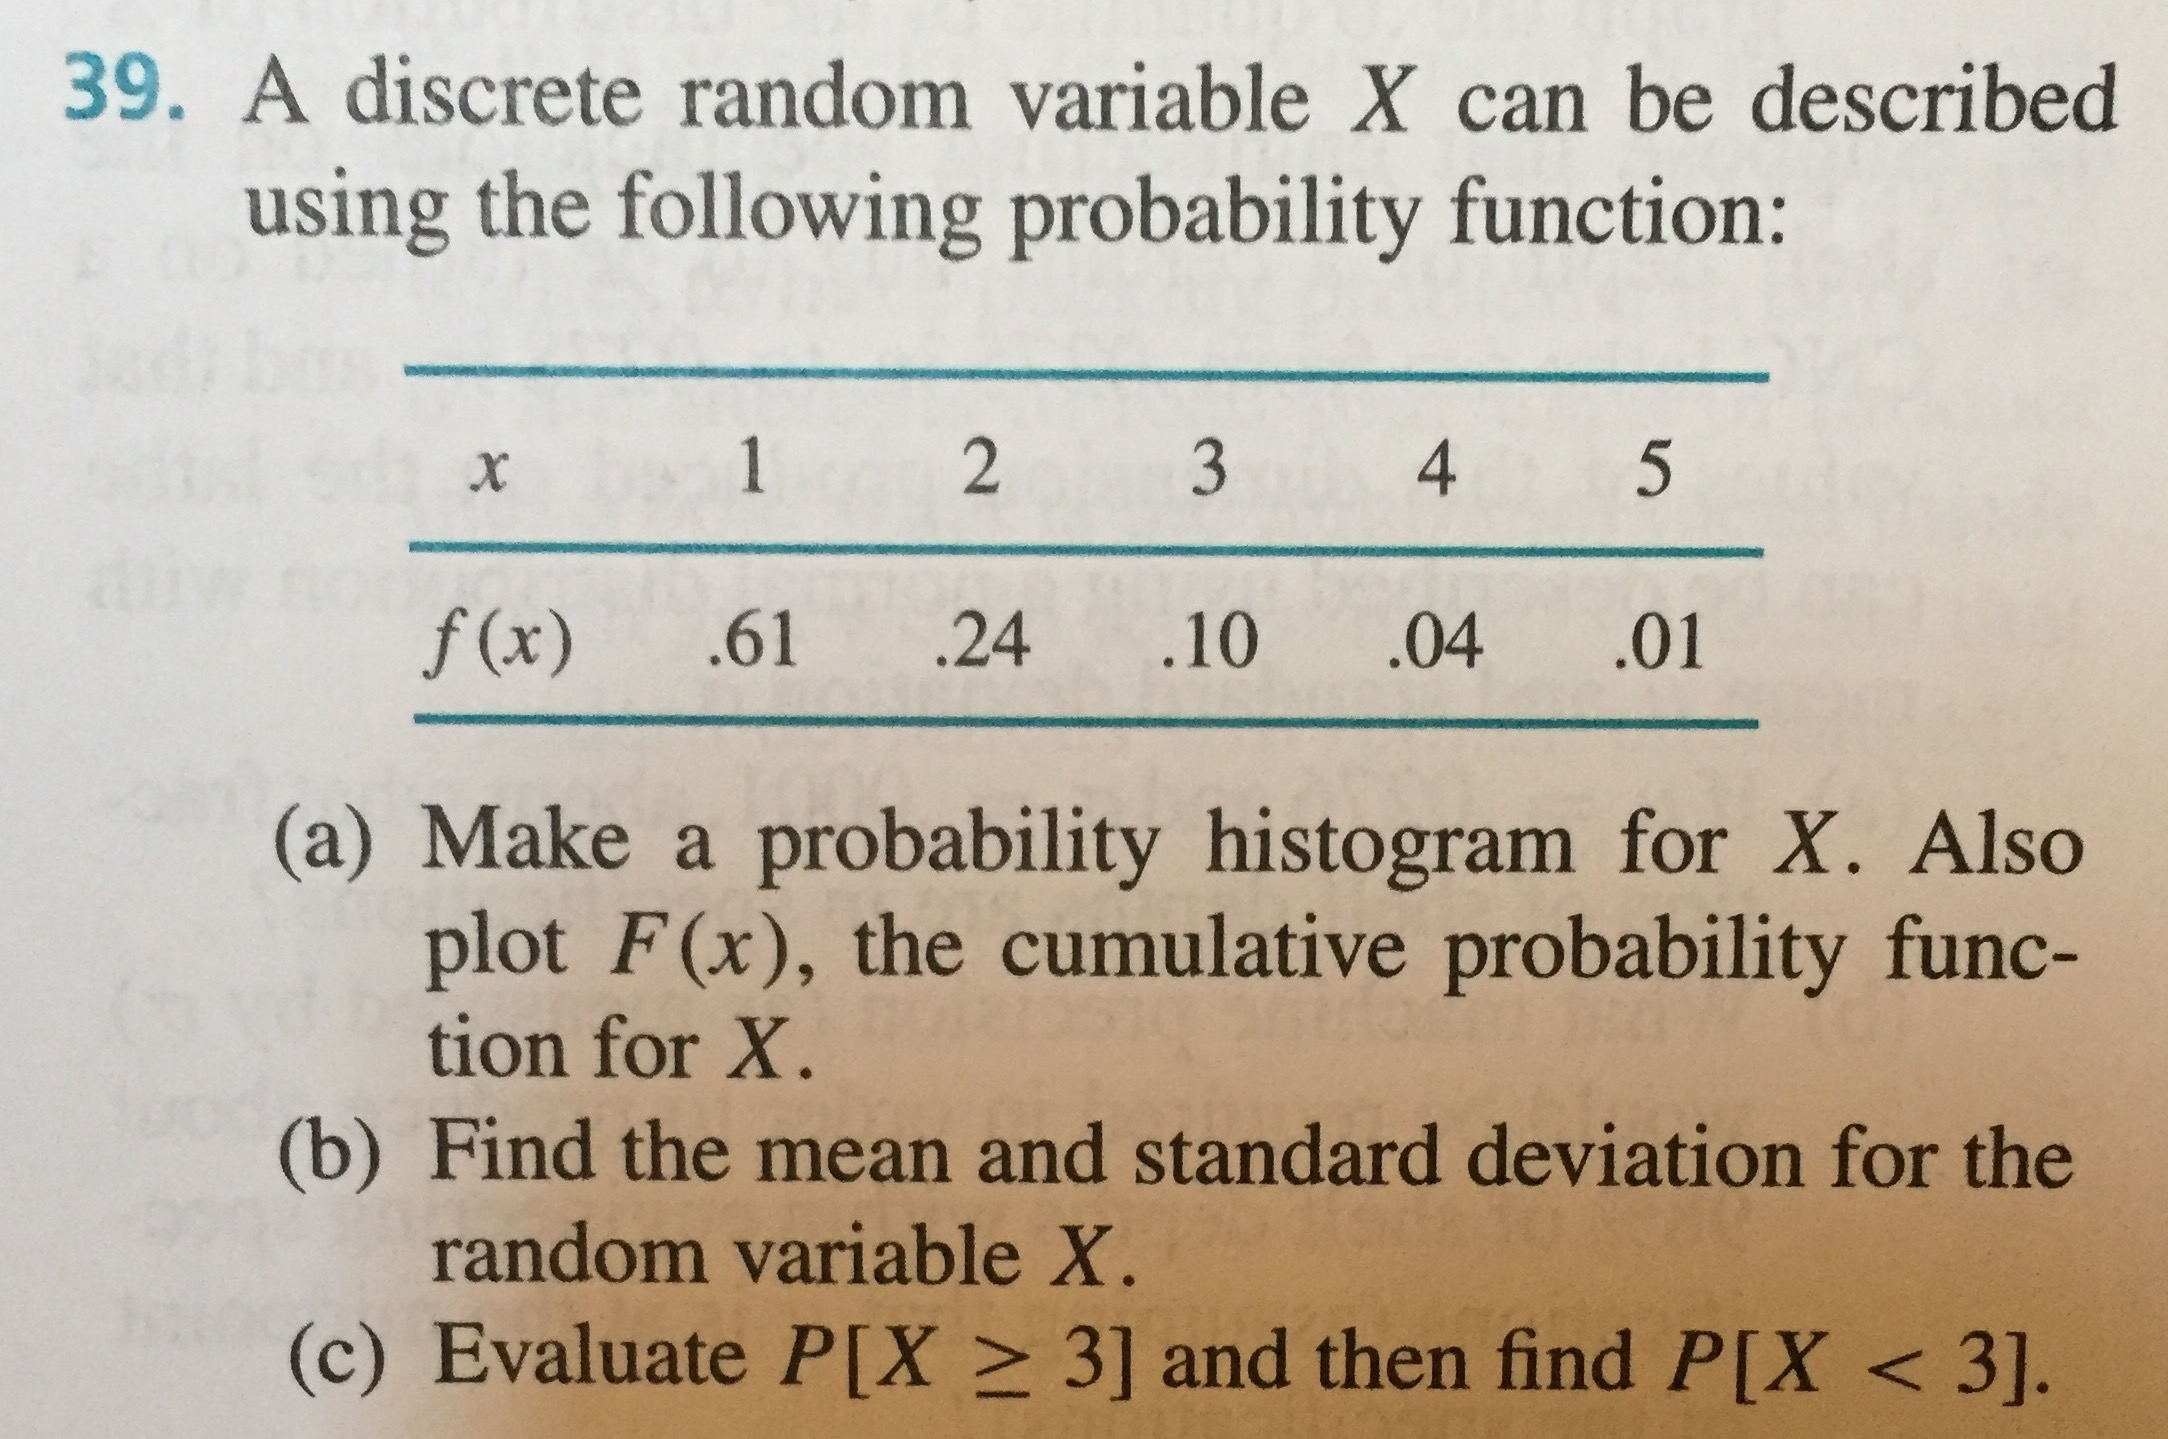 A Discrete Random Variable X Can Be Described Usin